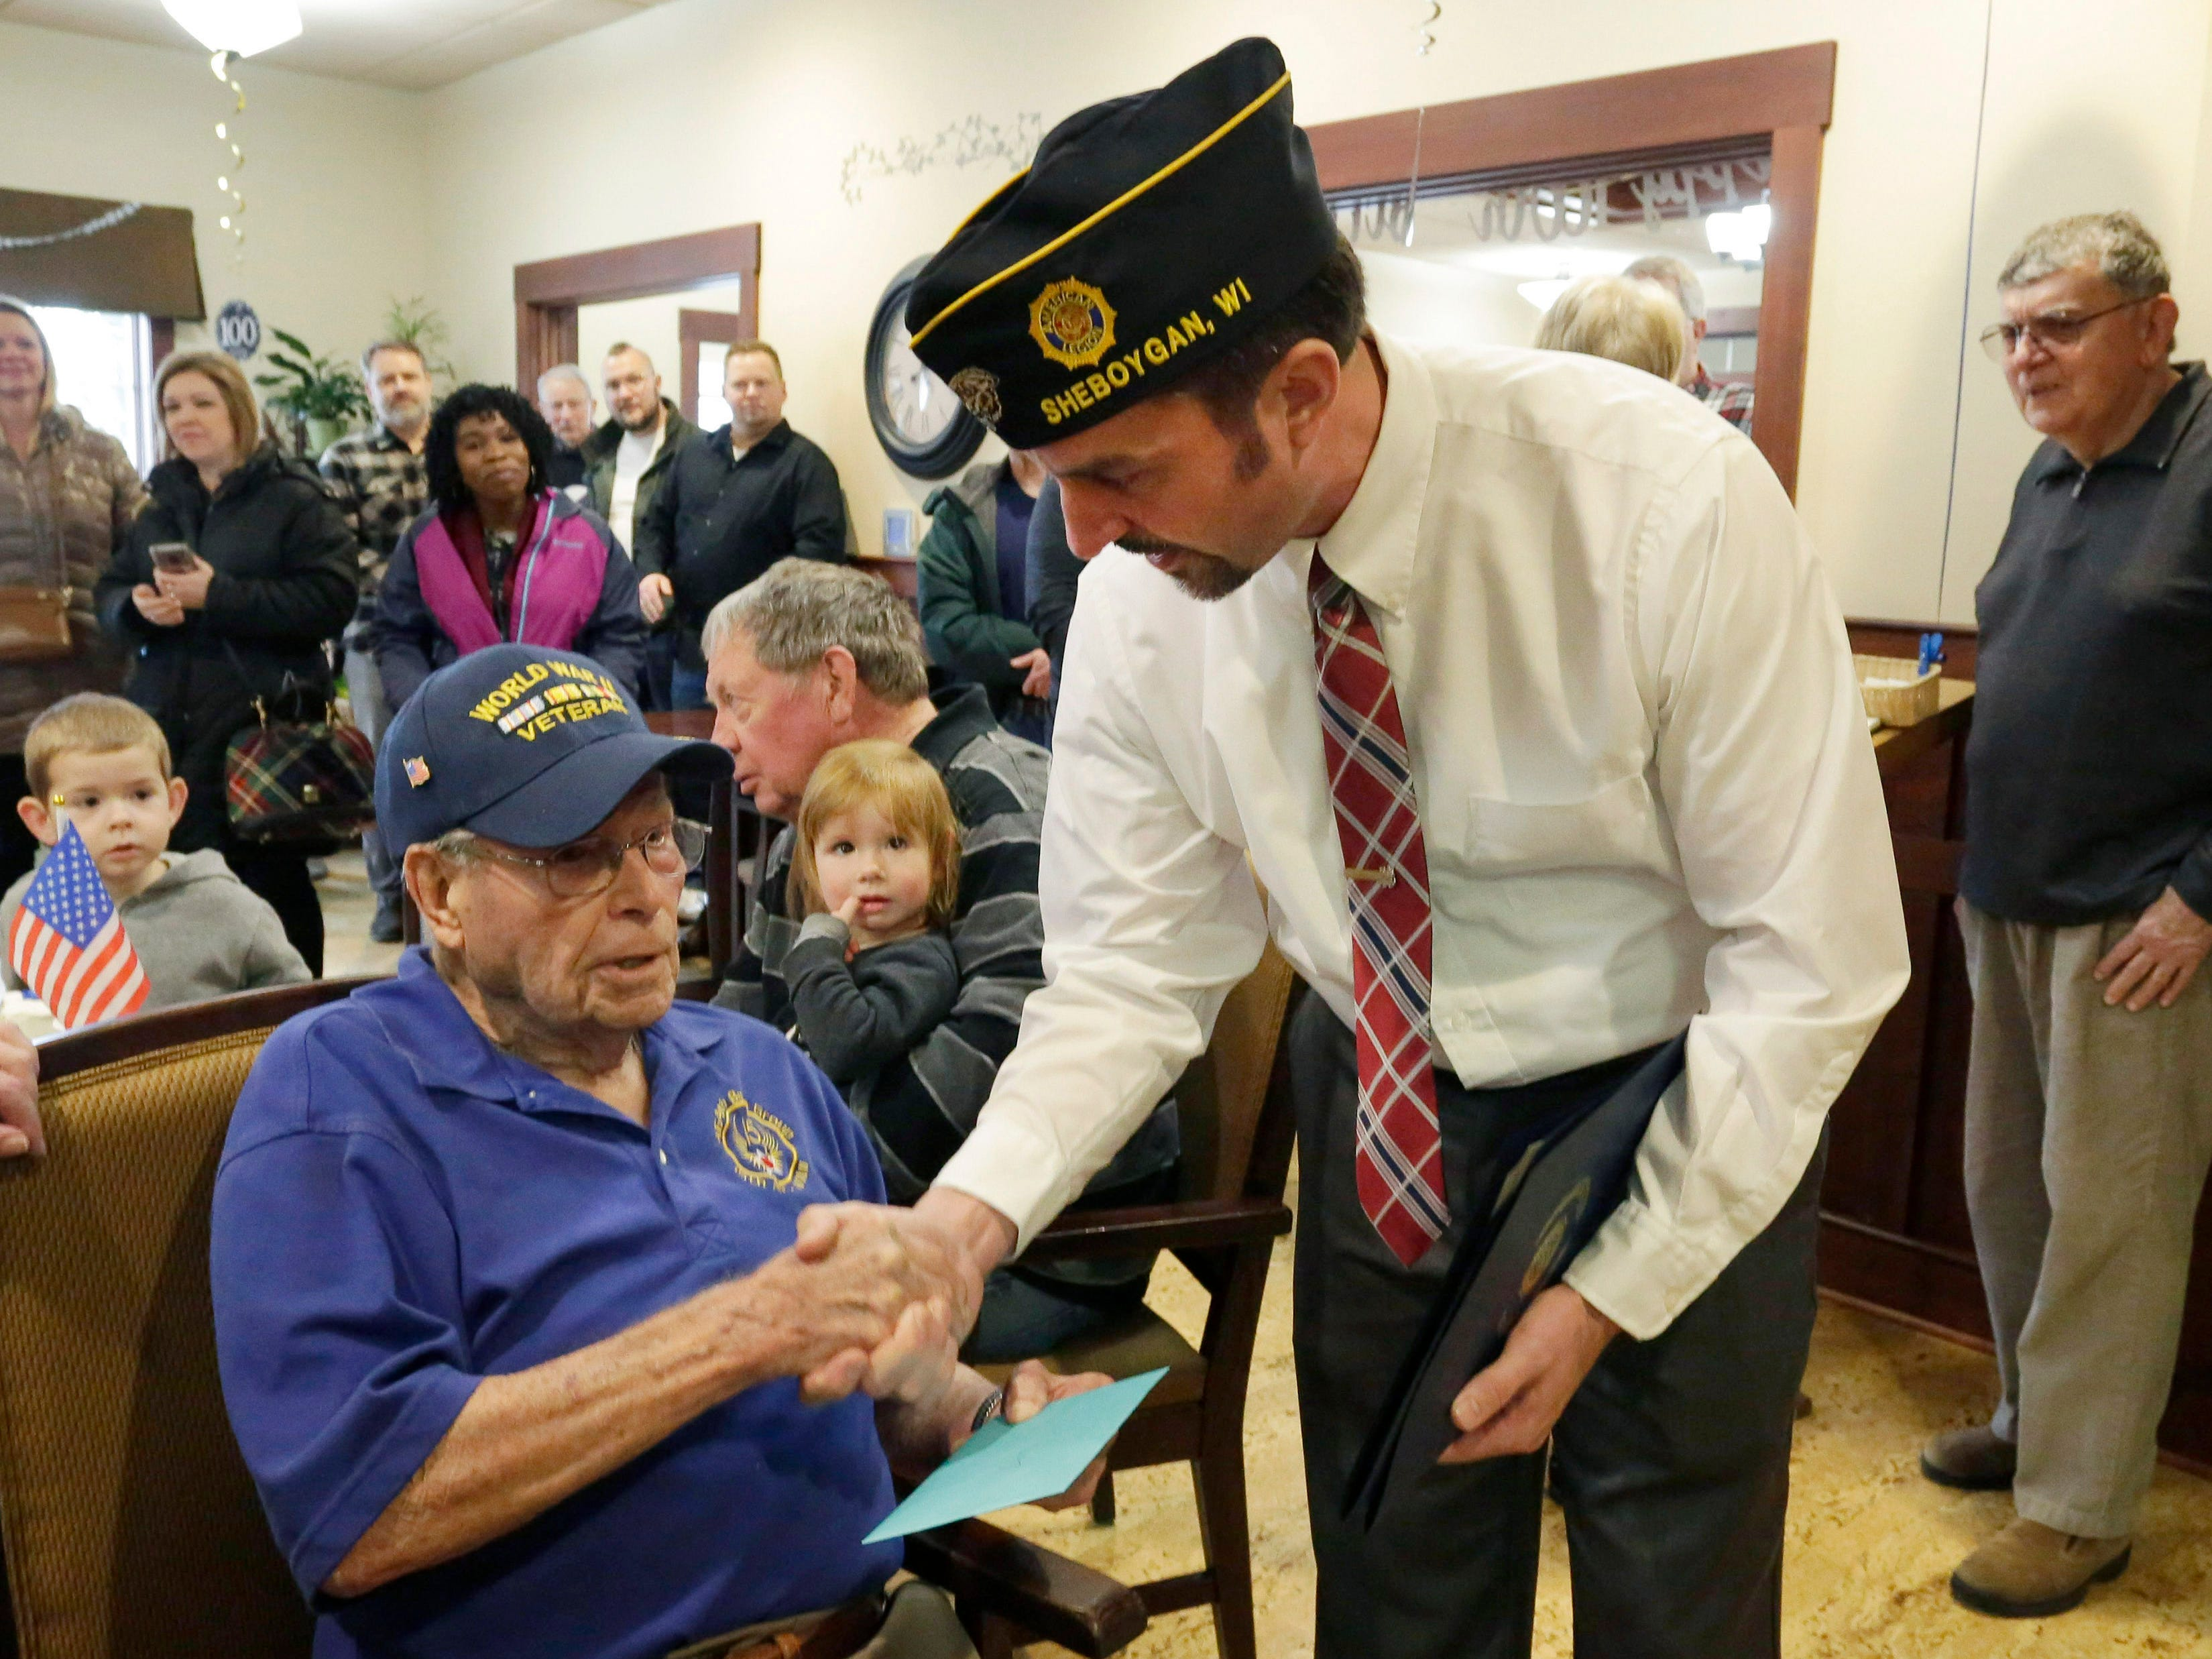 American Legion's Craig Stewart, right, greets World War II veteran Don Harder on his 100th birthday, Friday January 18, 2019, 2019, at Pine Haven Christian Communities in Oostburg, Wis.